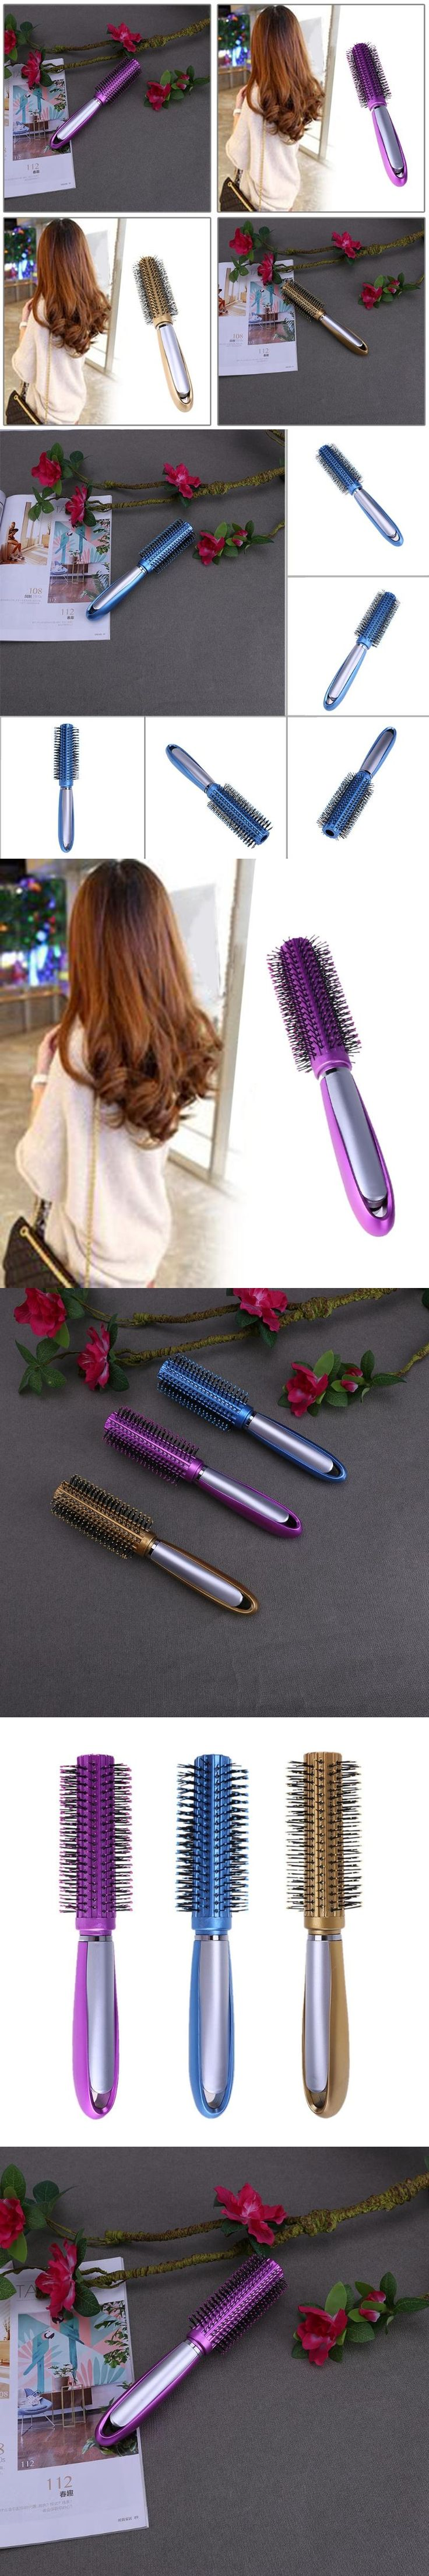 Straight Curly Wavy Hair Comb Roll Brush Professional Hair Style Anti-static ABS Shape Combs Hair Care Pin Cushion Comb Brush